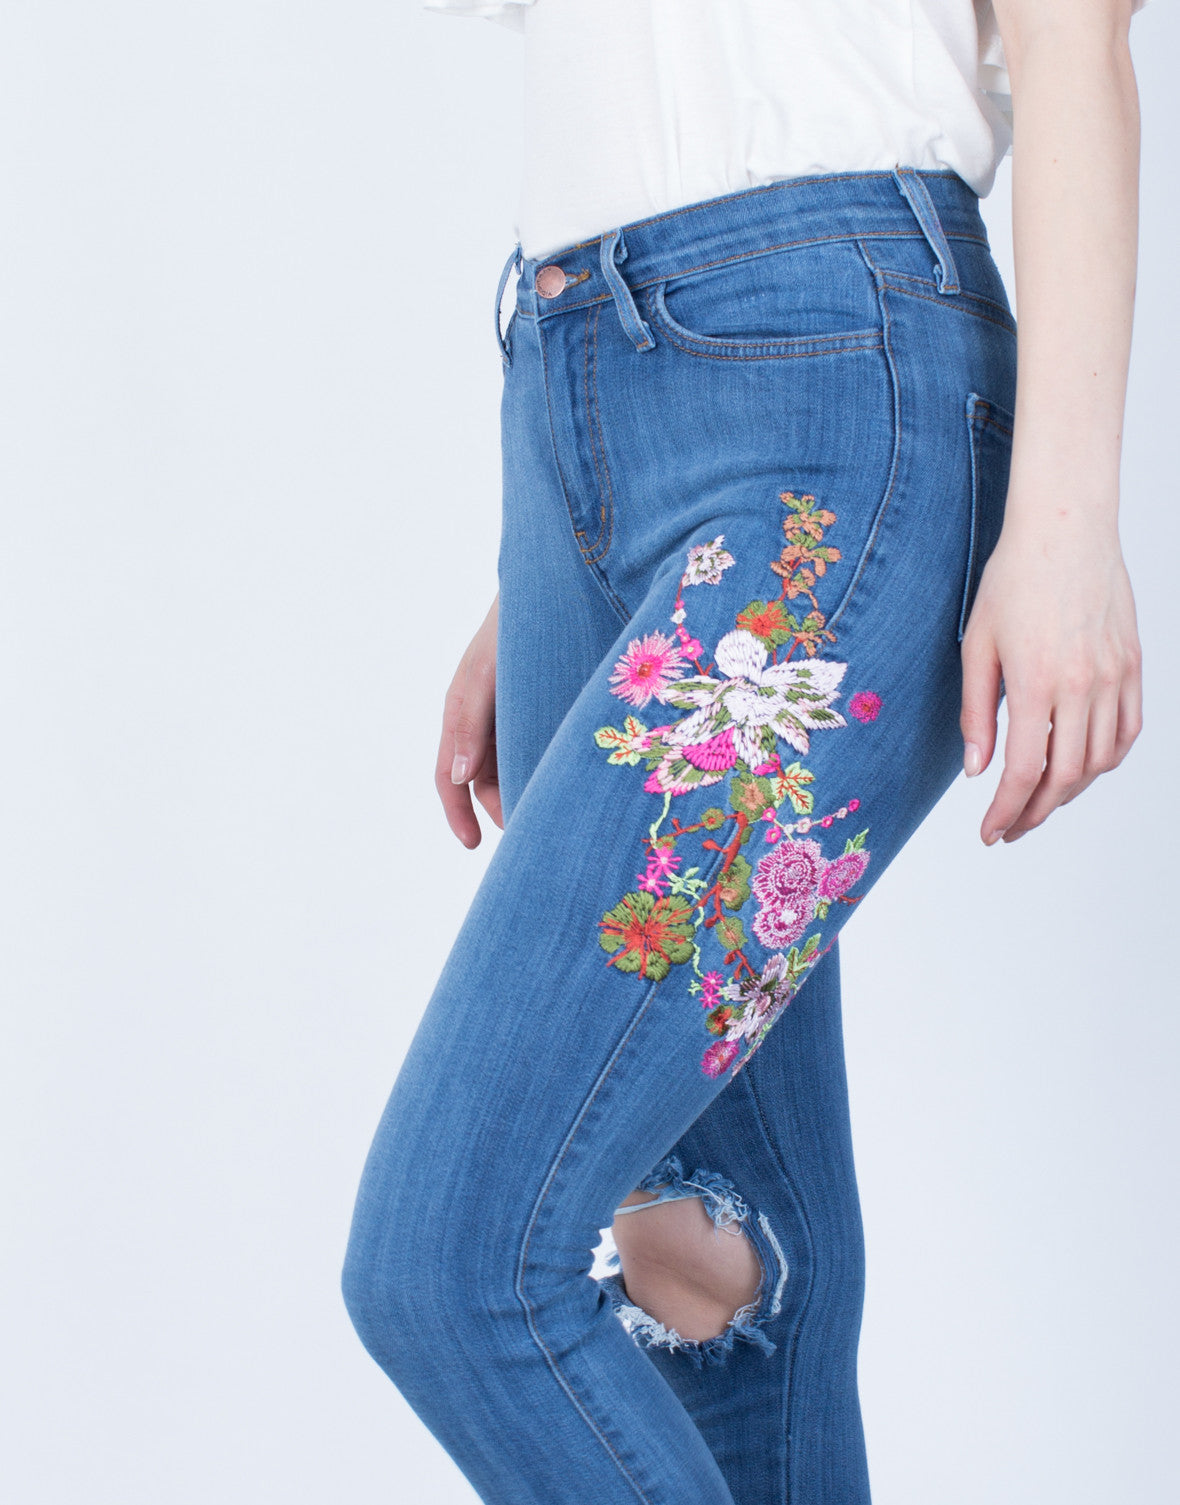 Detail of Floral Embroidered Jeans